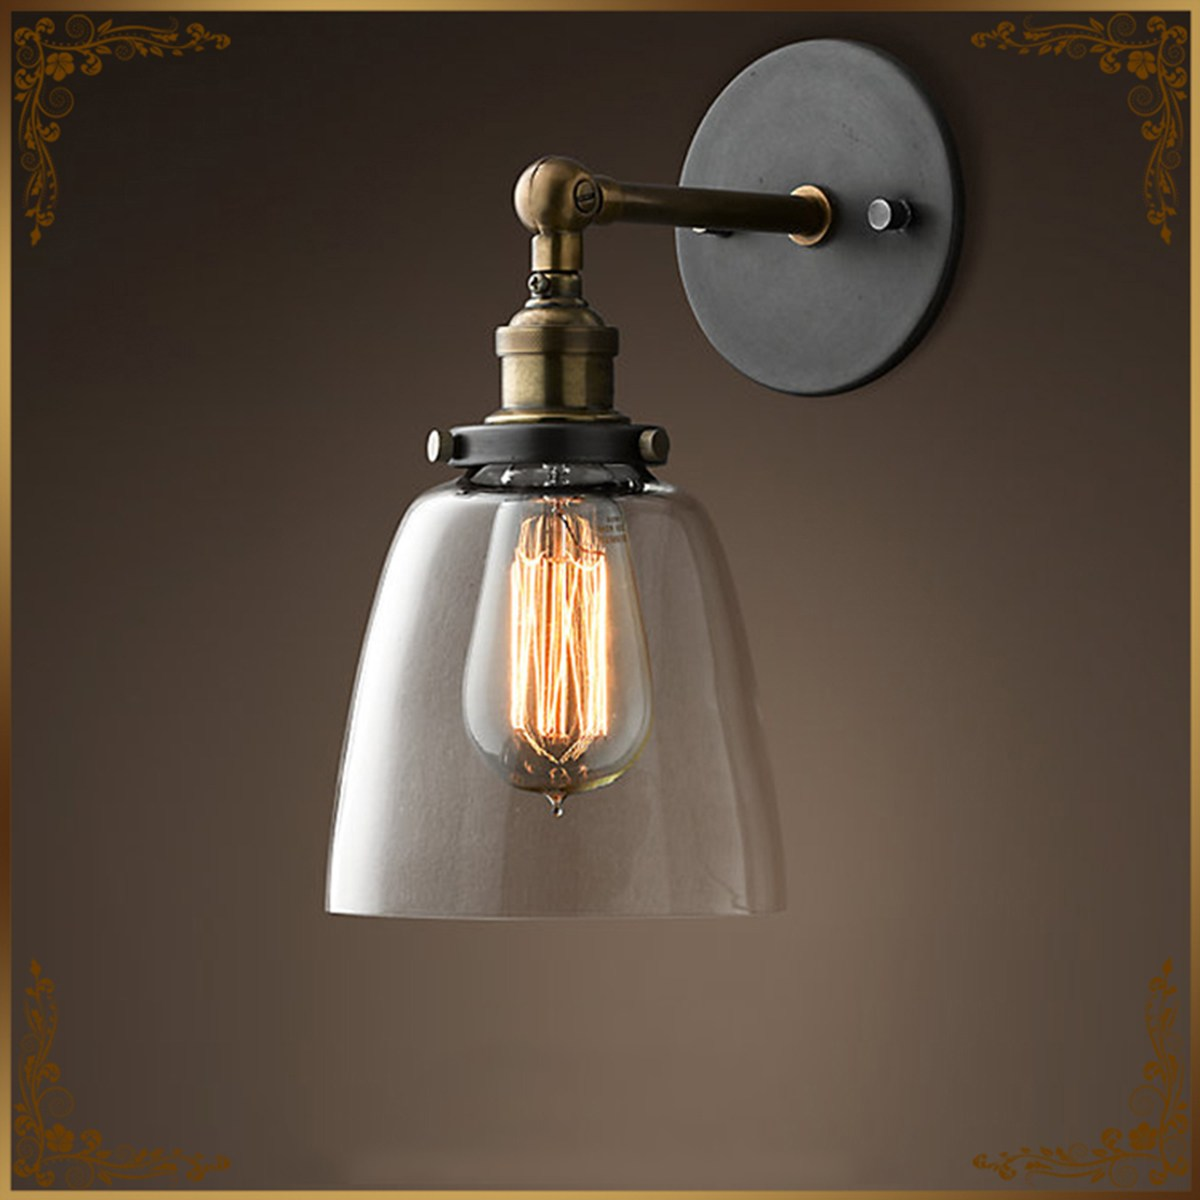 E27 Vintage Industrial Retro Glass Shade wall Lamp transparent Amber Color Lampshade Wall Light Bulb Holder Home Decor AC85-265V